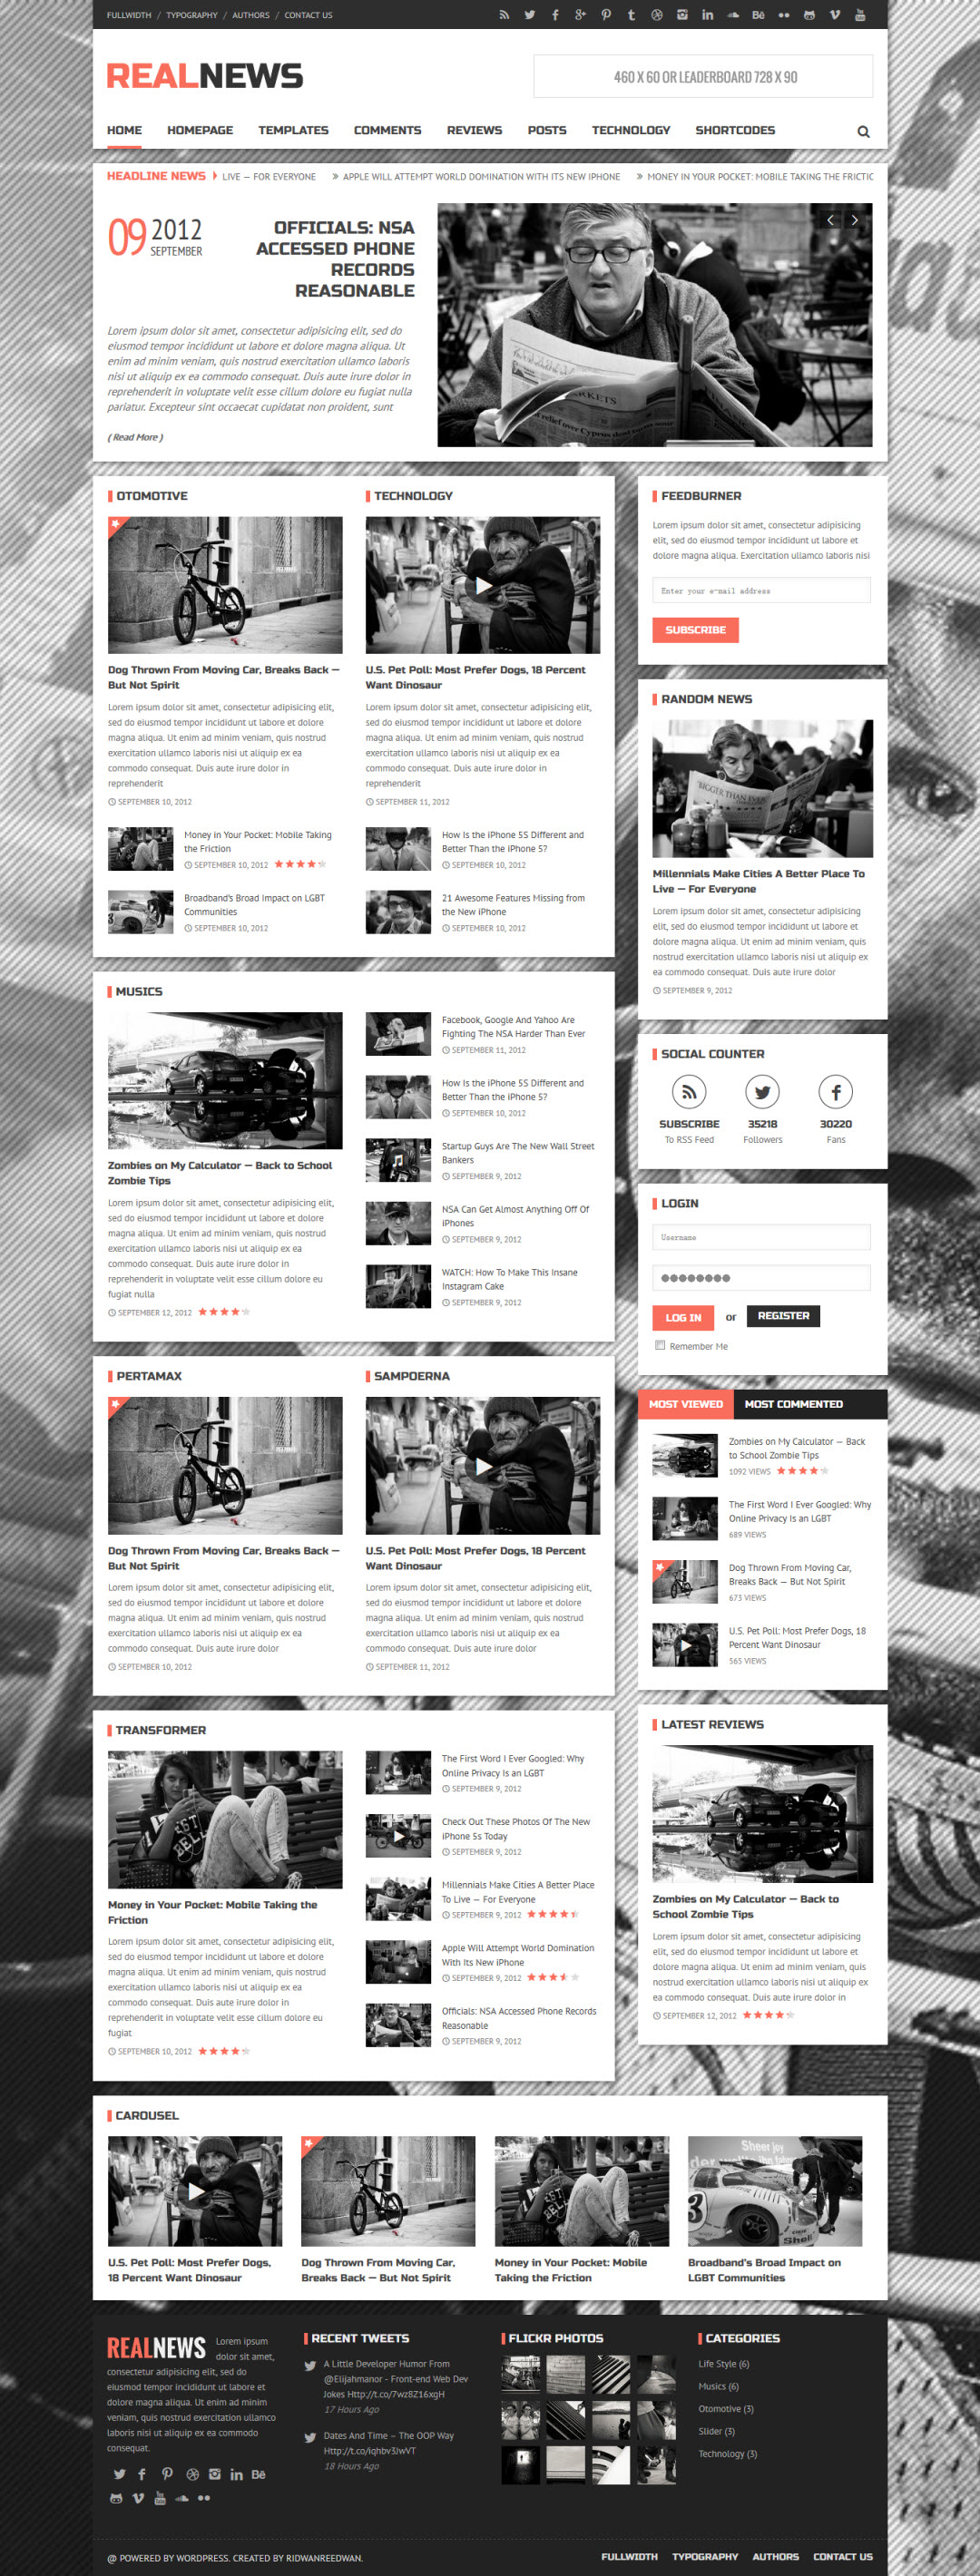 Realnews Theme